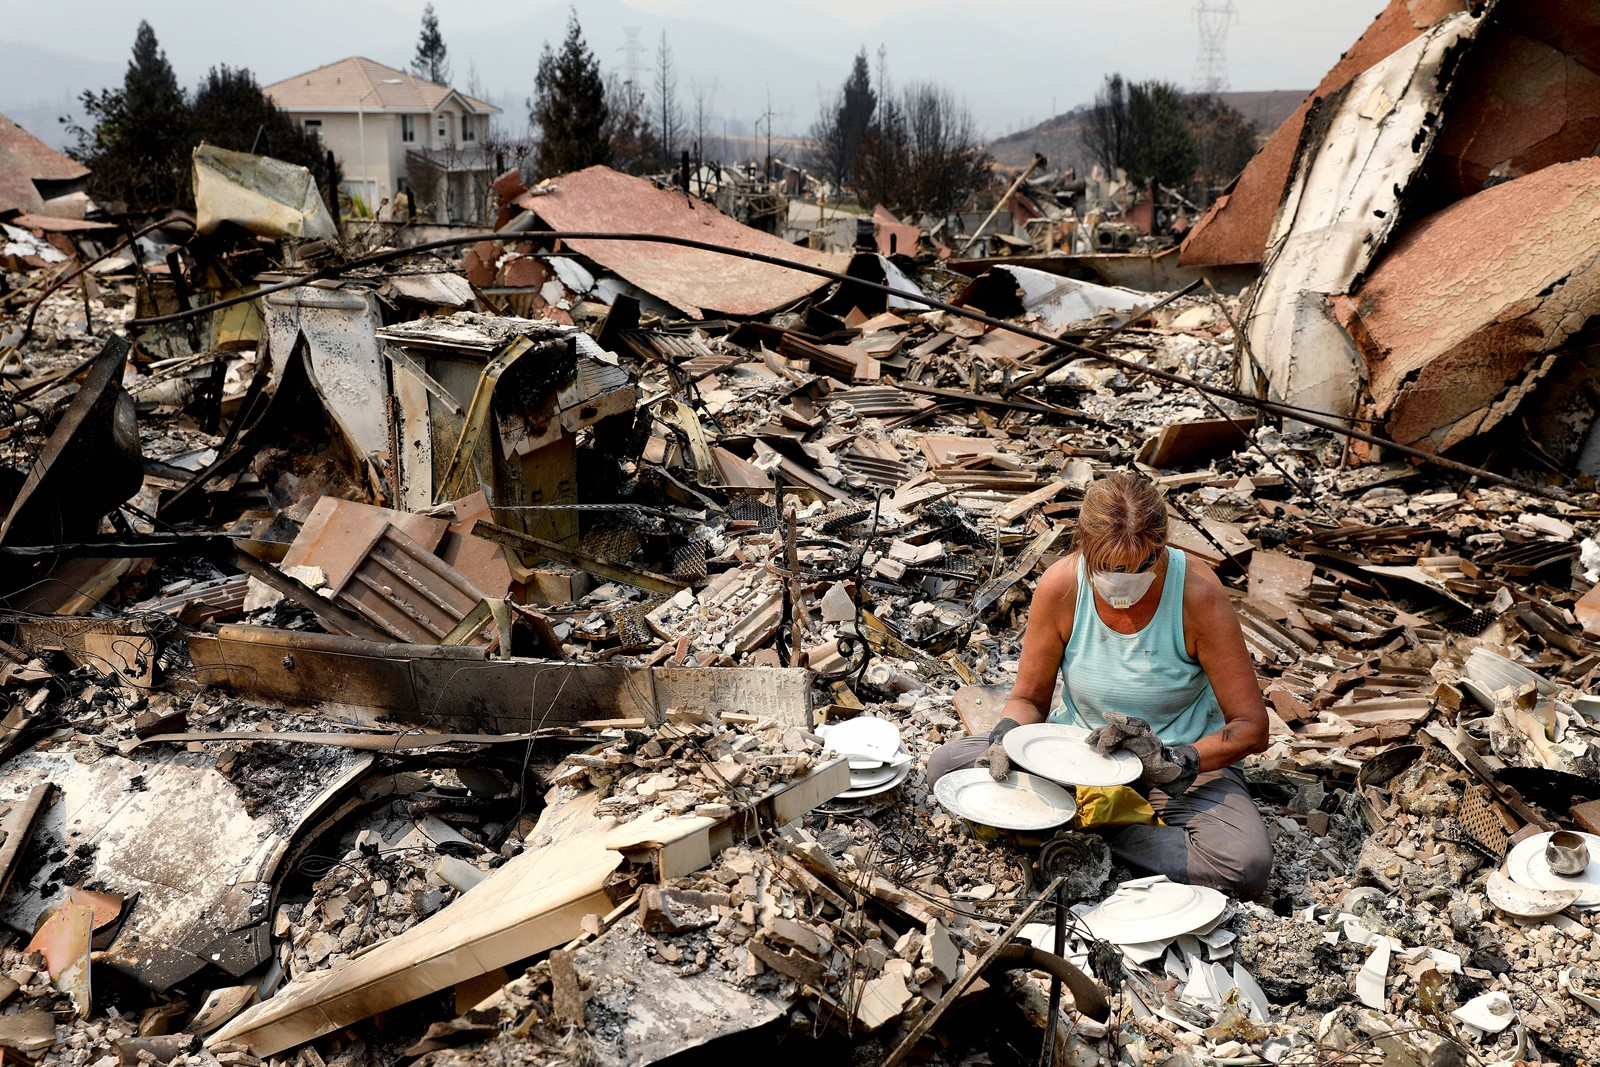 Maureen Kissick in Redding, California looks through what is left of her china from her wedding 36 years ago. — Photograph: Gary Coronado/Los Angeles Times.